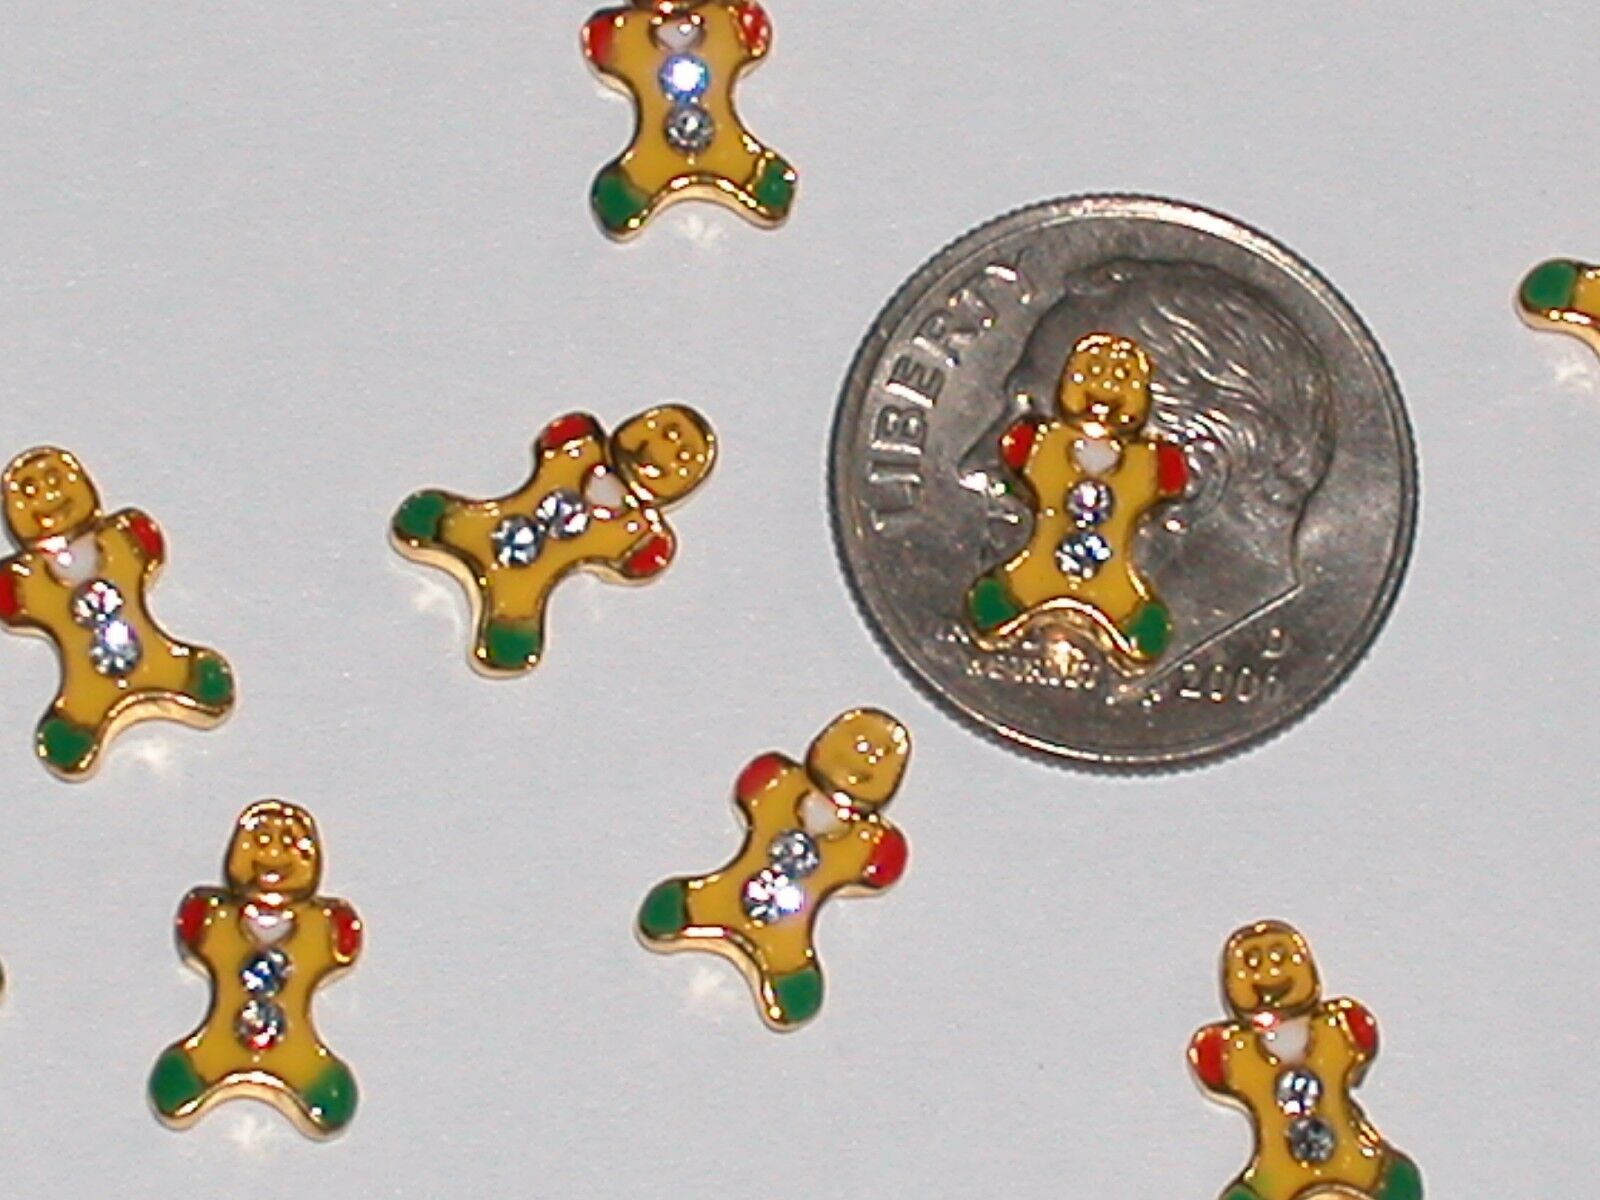 2pc Miniature Christmas Gingerbread Man Cookie Cutter Bead Floating Charm 10mm - $4.95